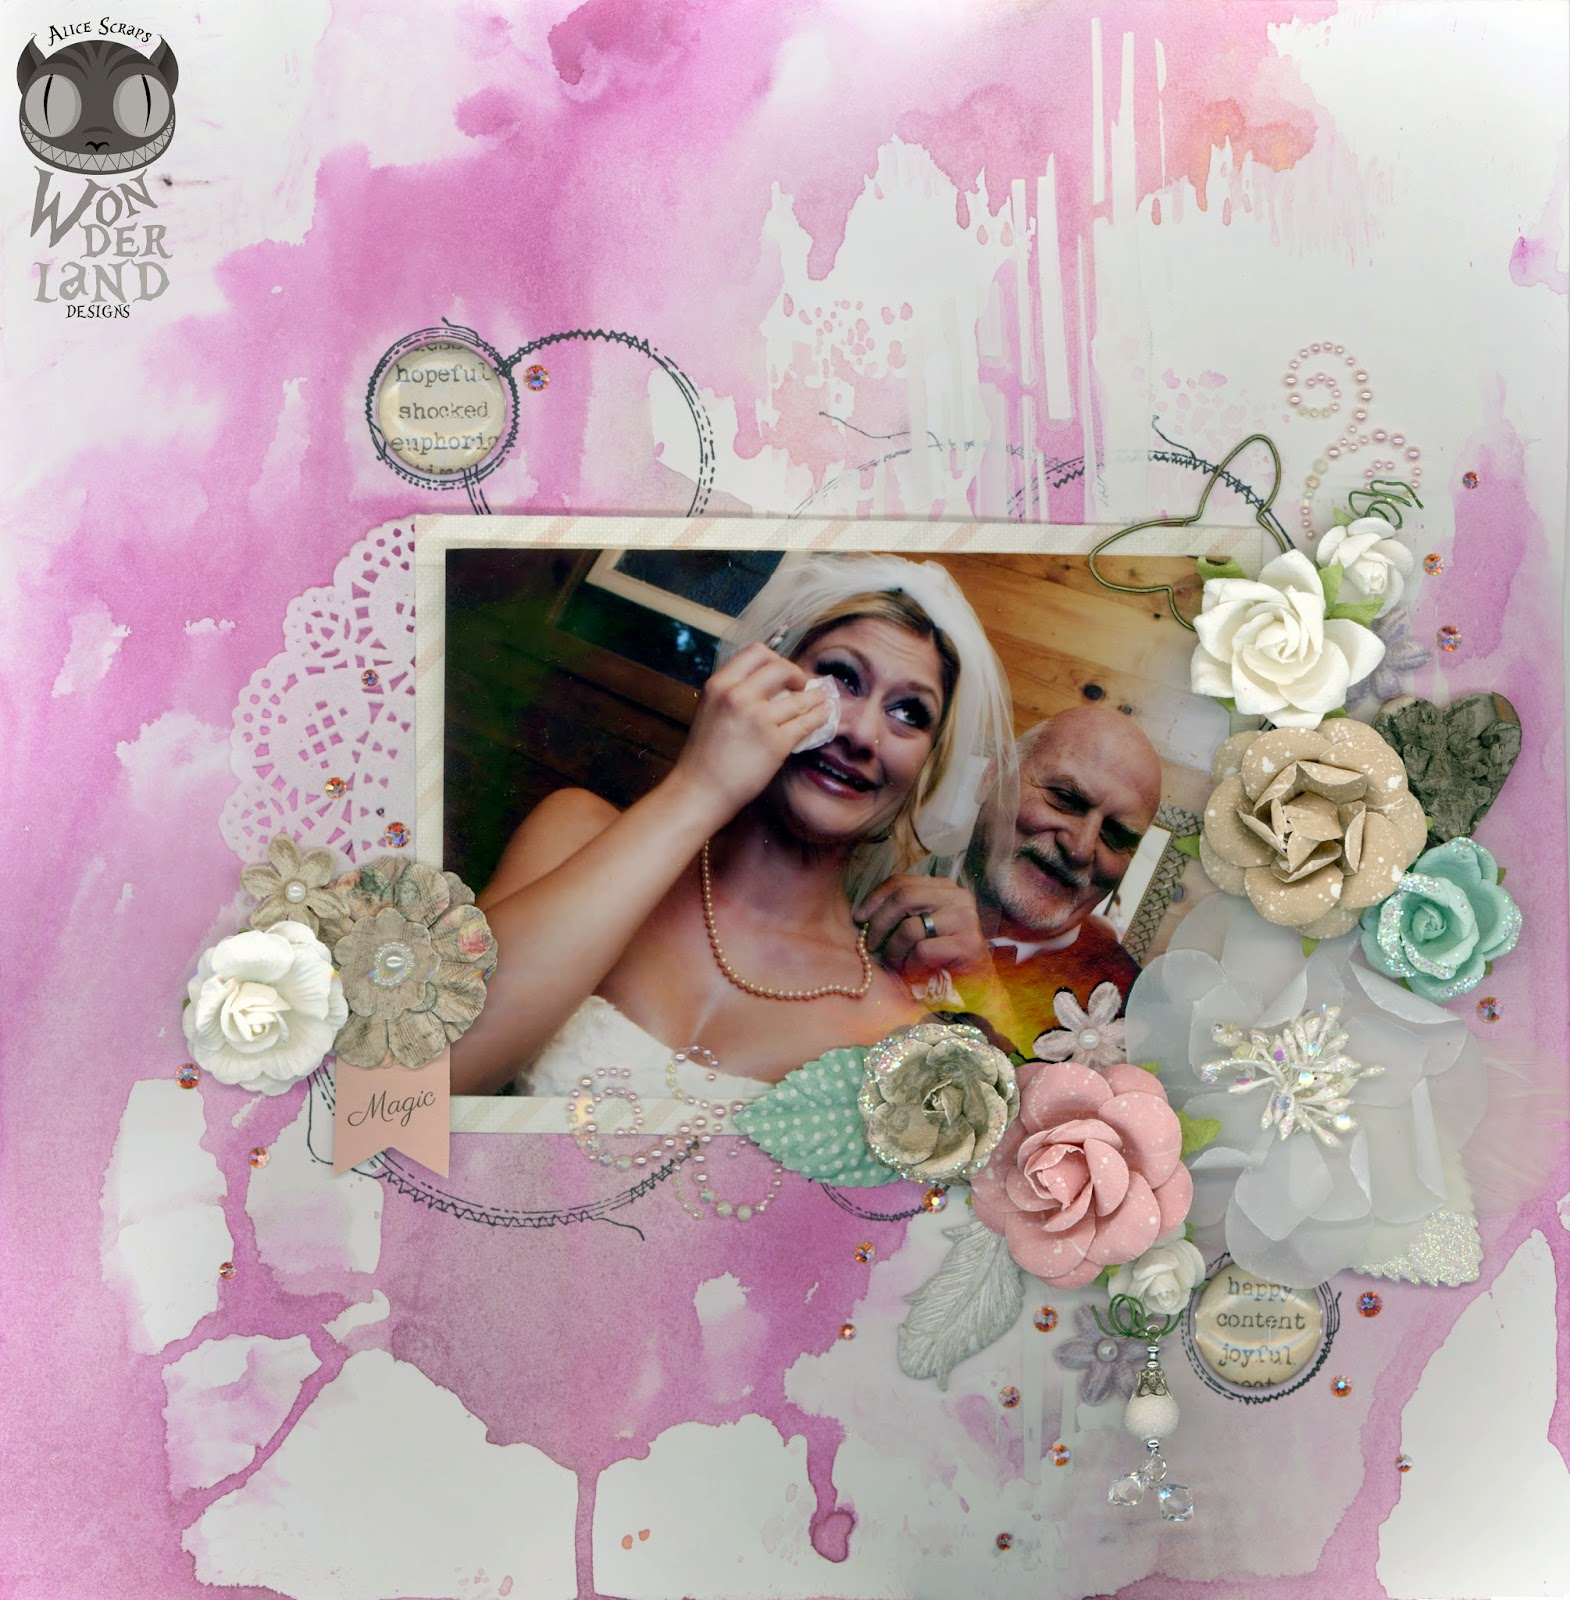 String of Pearls by Alice Scraps Wonderland | A soft pink watercolor background and lots of Prima Marketing flowers showcase this touching photo of the bride and her father.